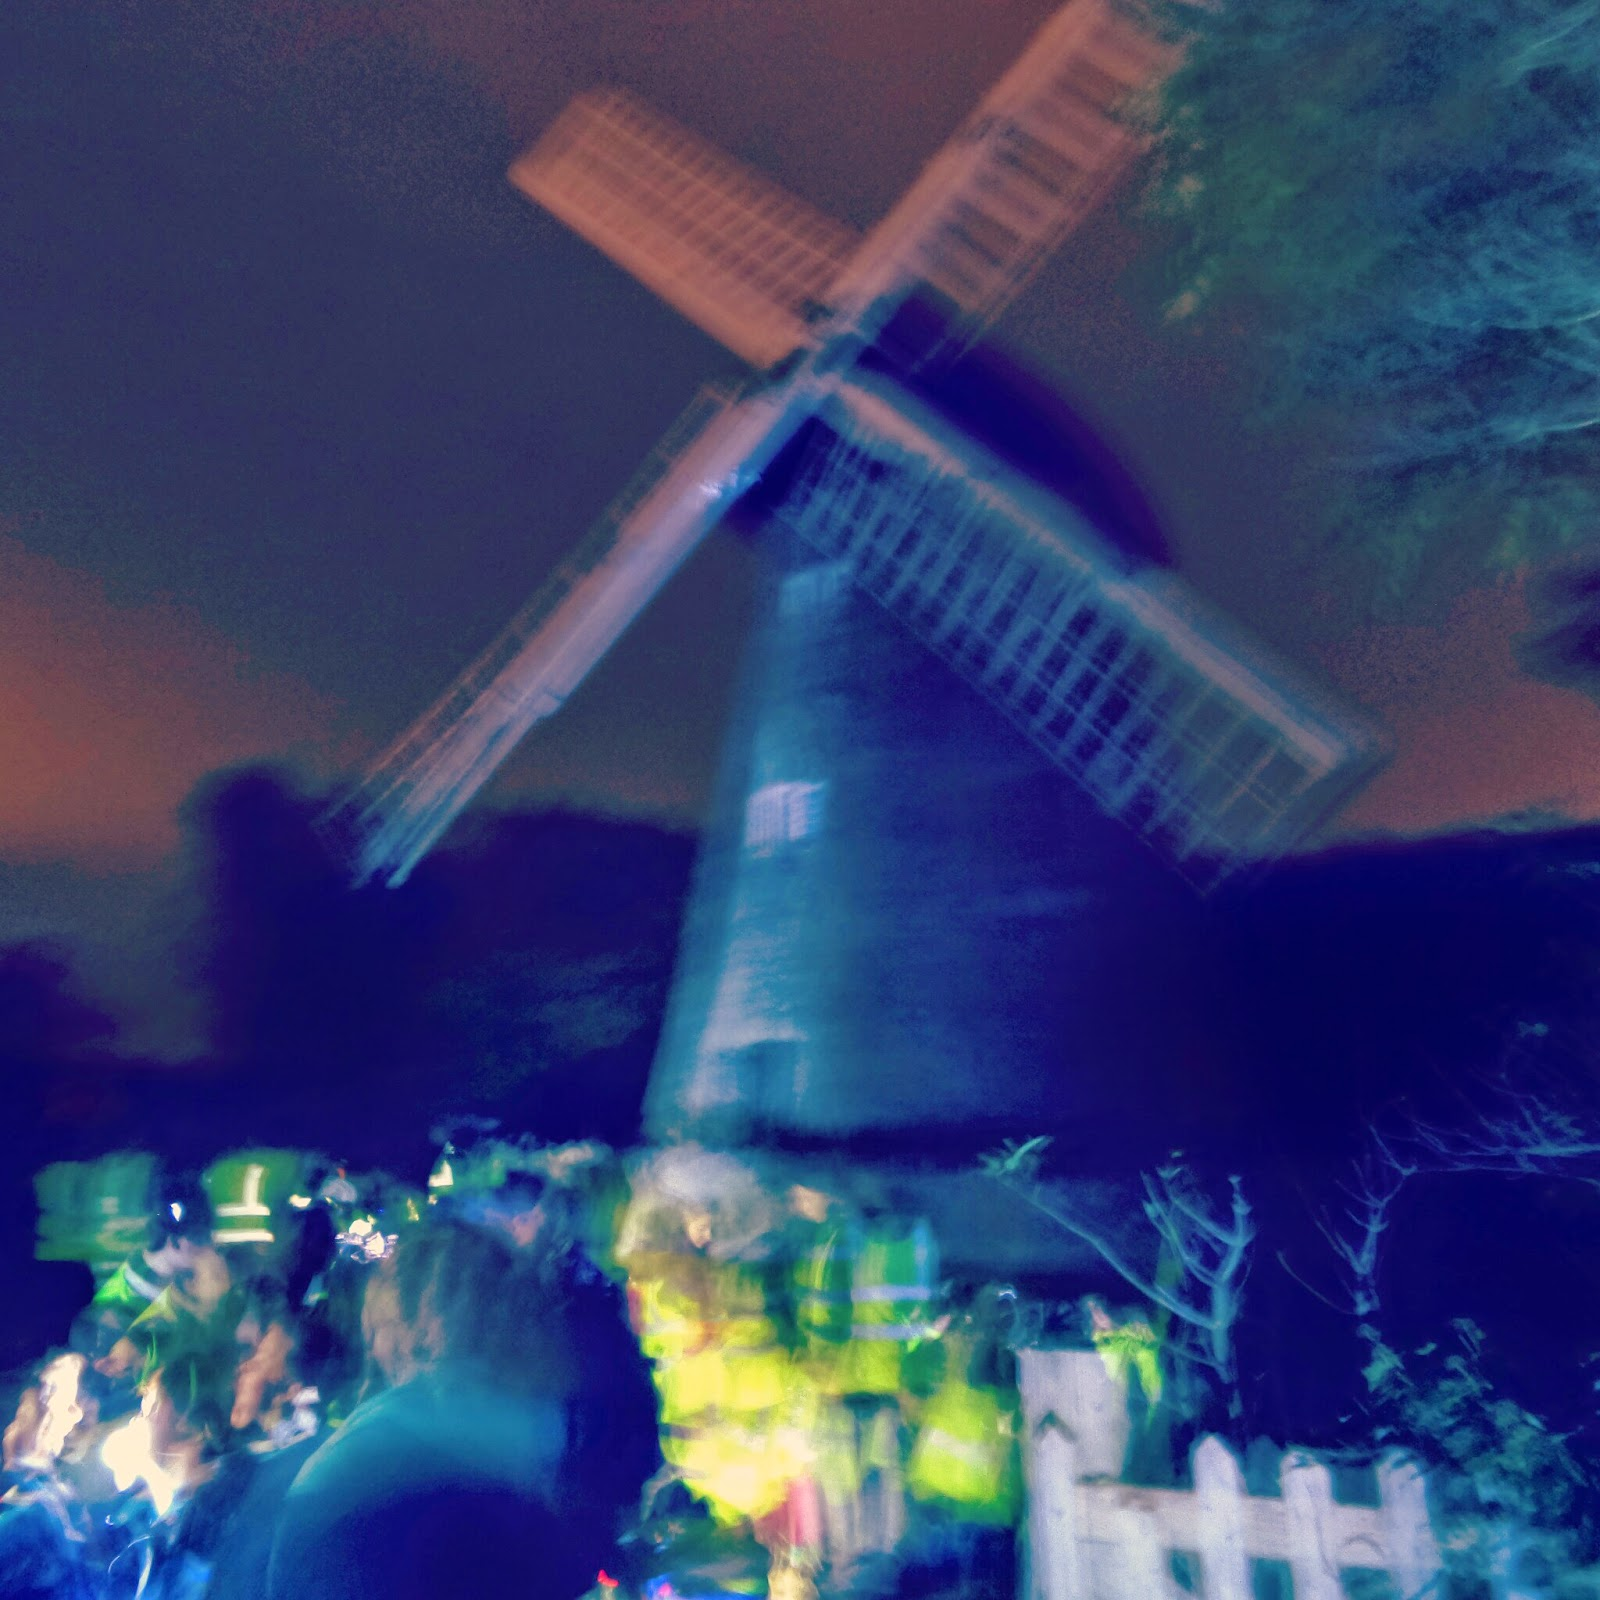 A night hike to a Windmill in Milton Keynes